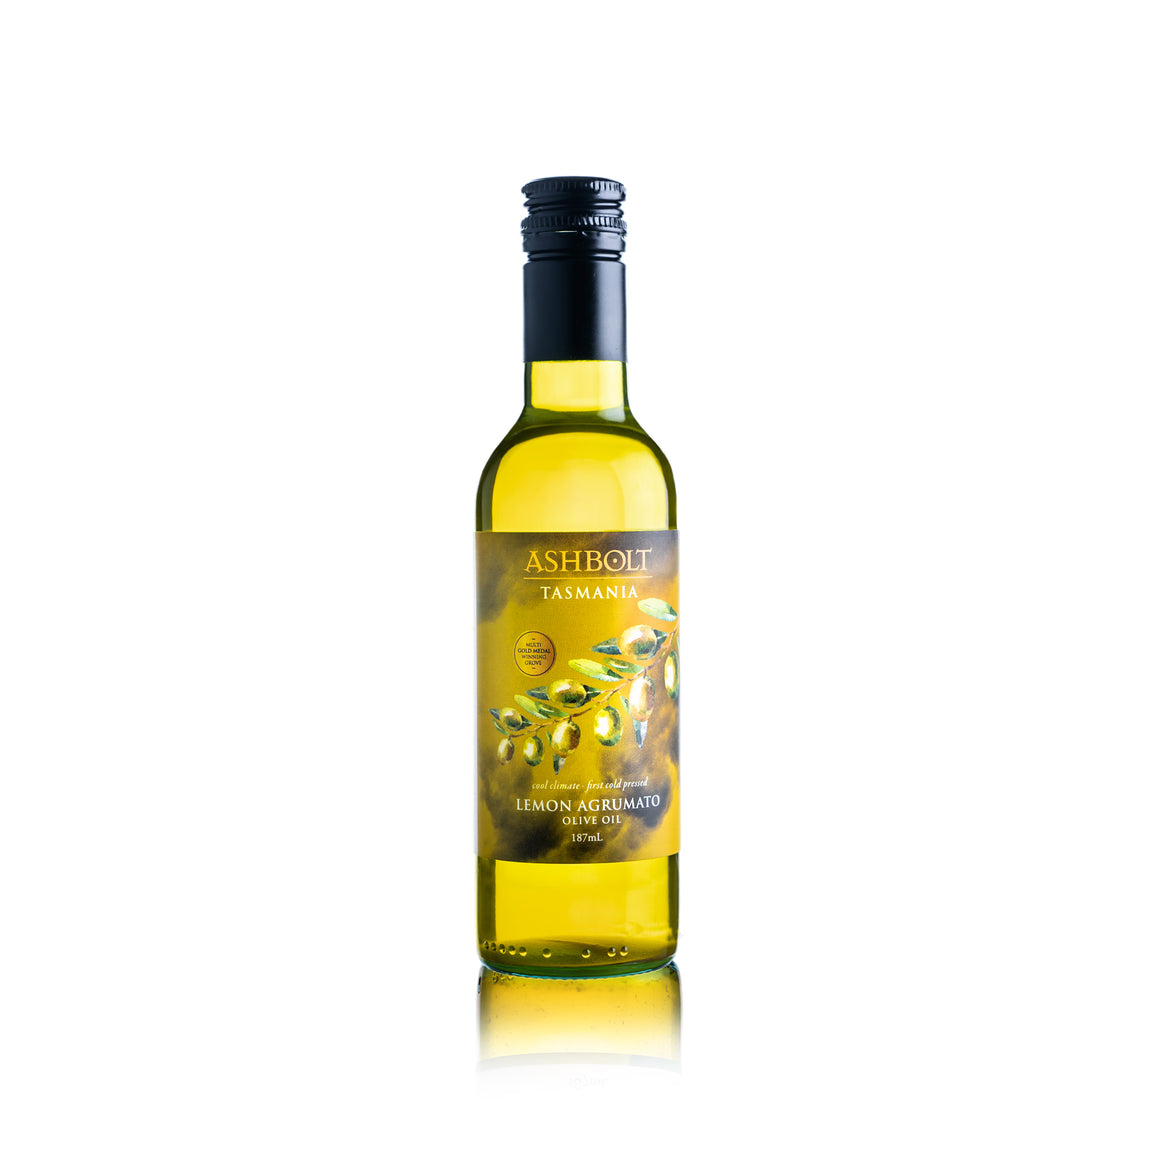 Ashbolt Lemon Agrumato Olive Oil